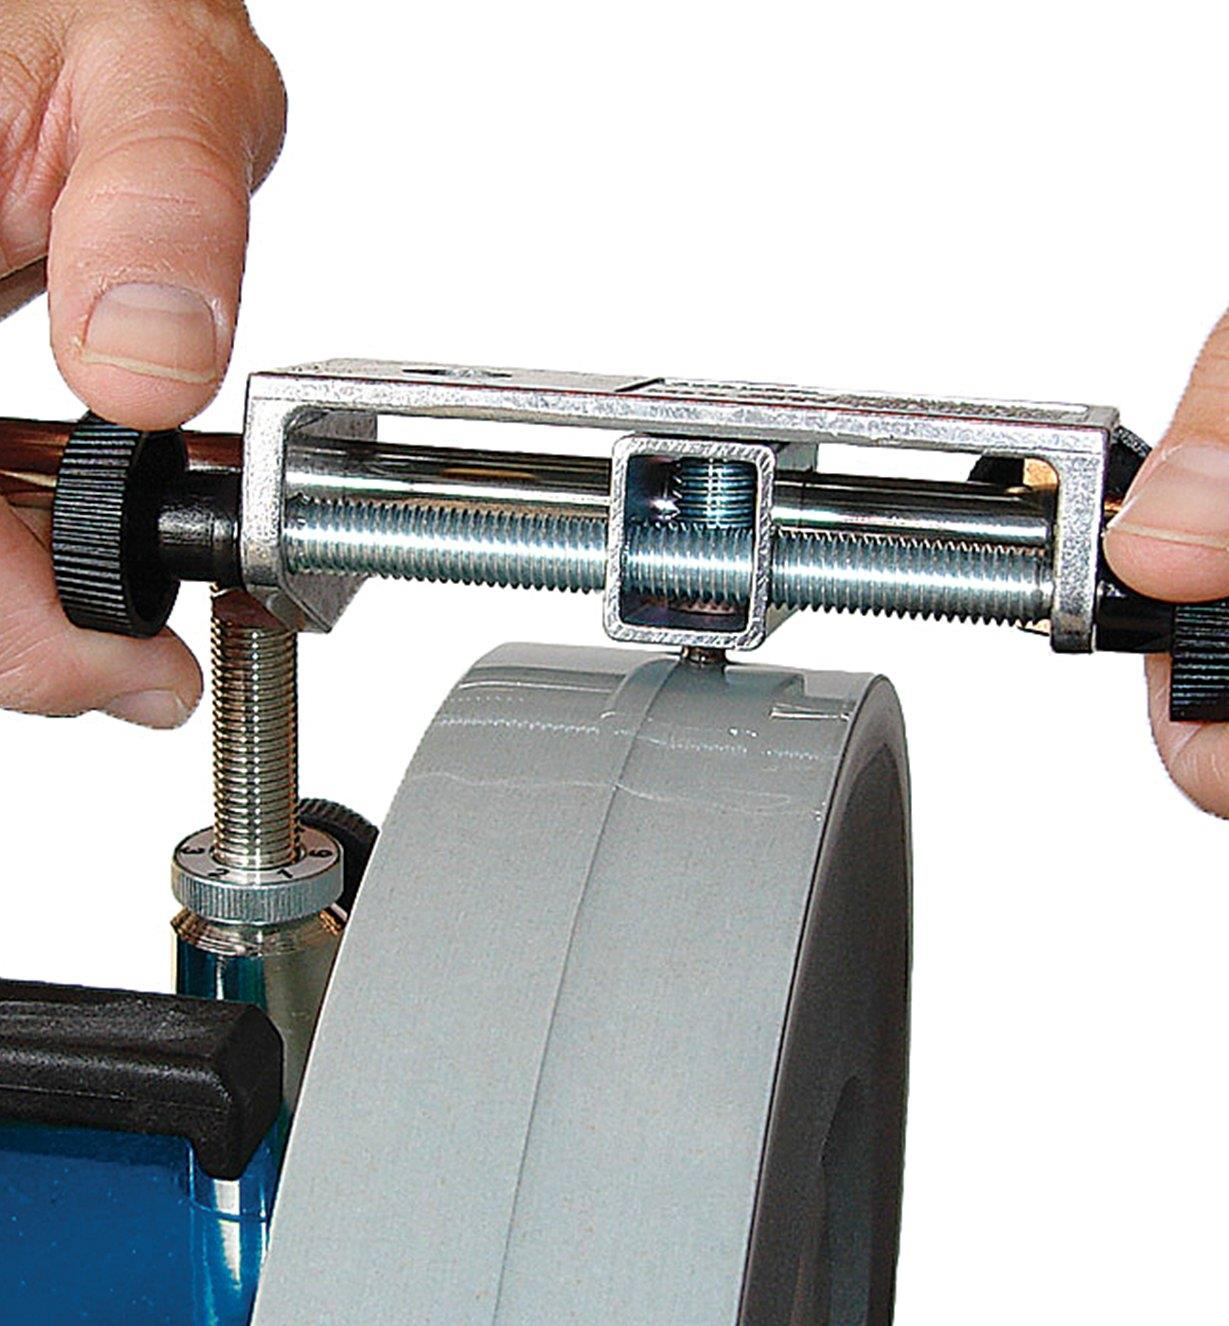 Dressing a grinding wheel with a Diamond-Tipped Truing Tool